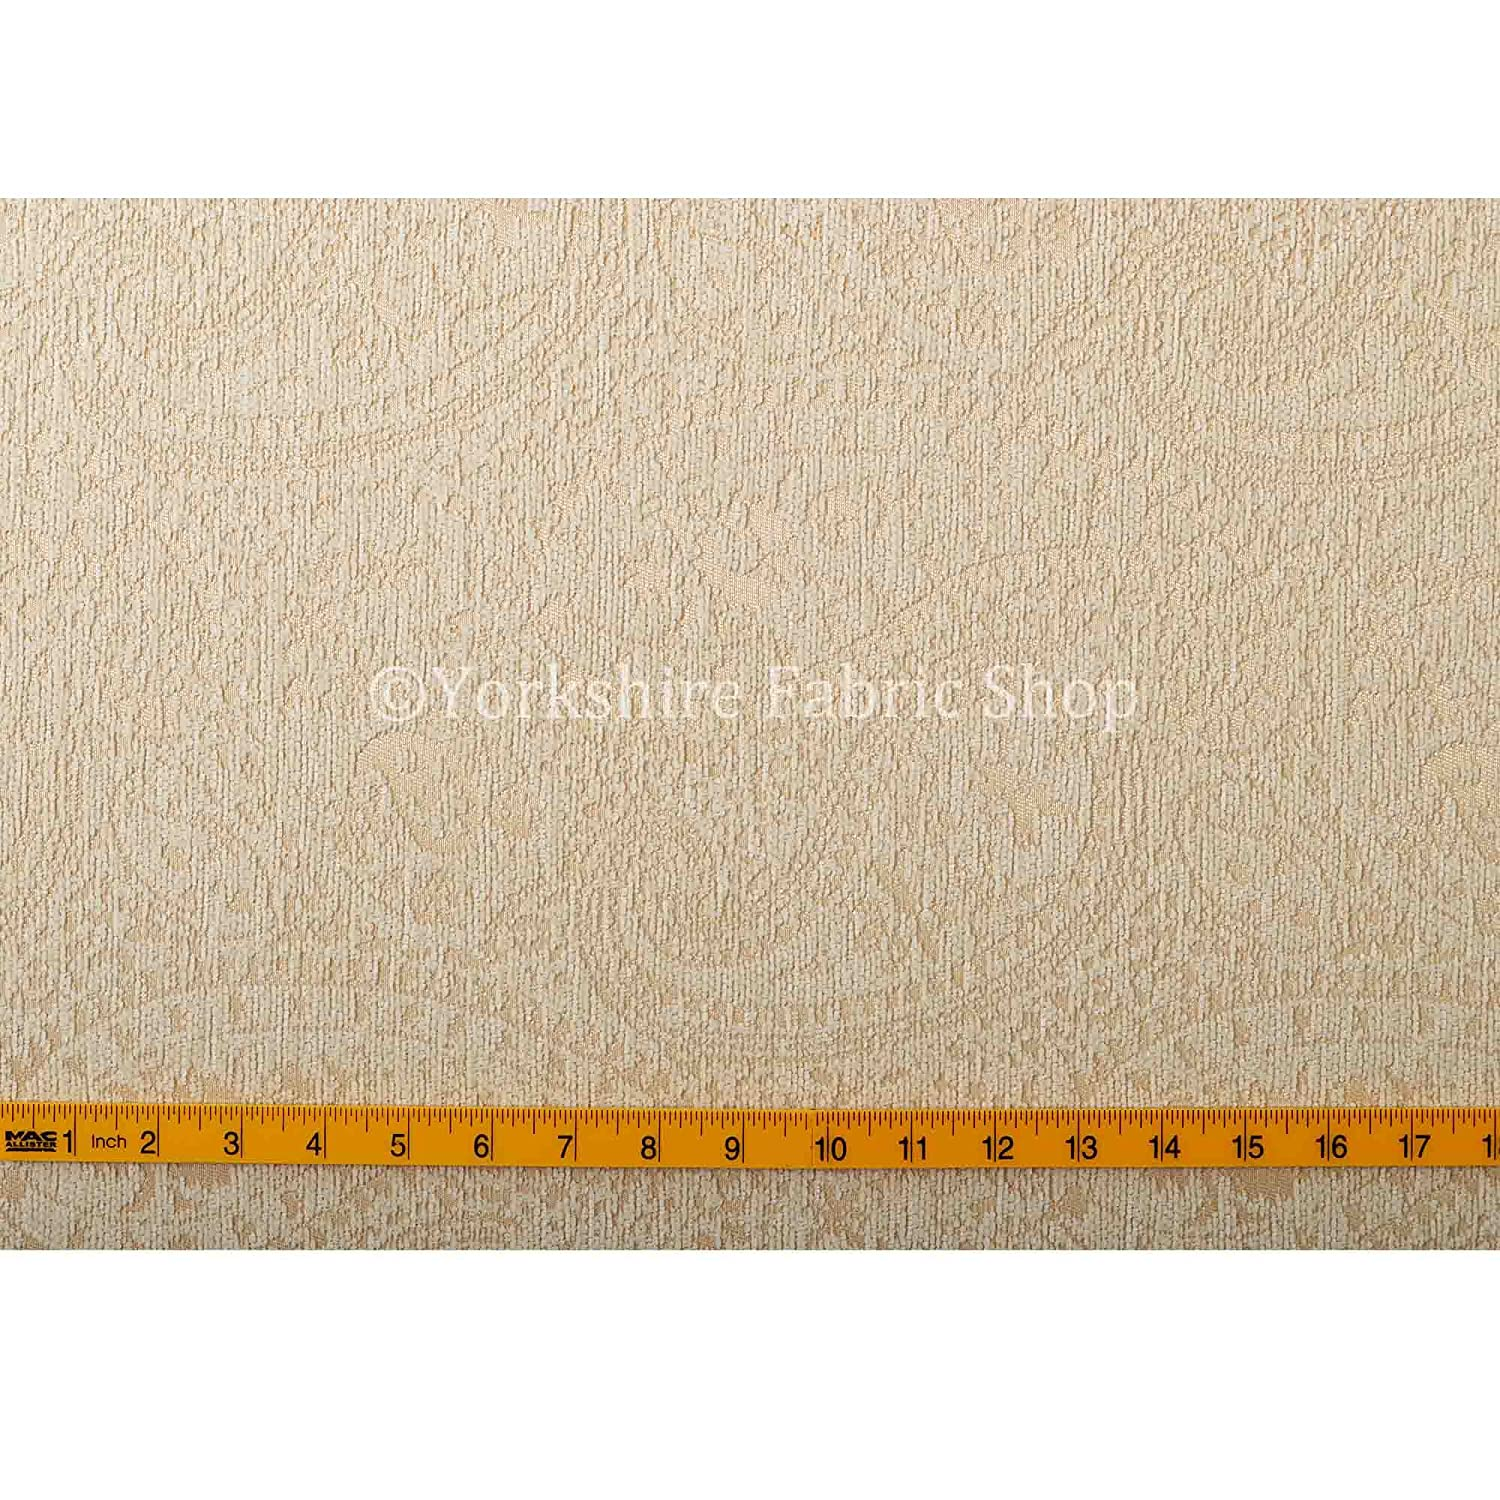 Yorkshire Fabric Shop Exclusiva Tela Color Crema Color Beige ...